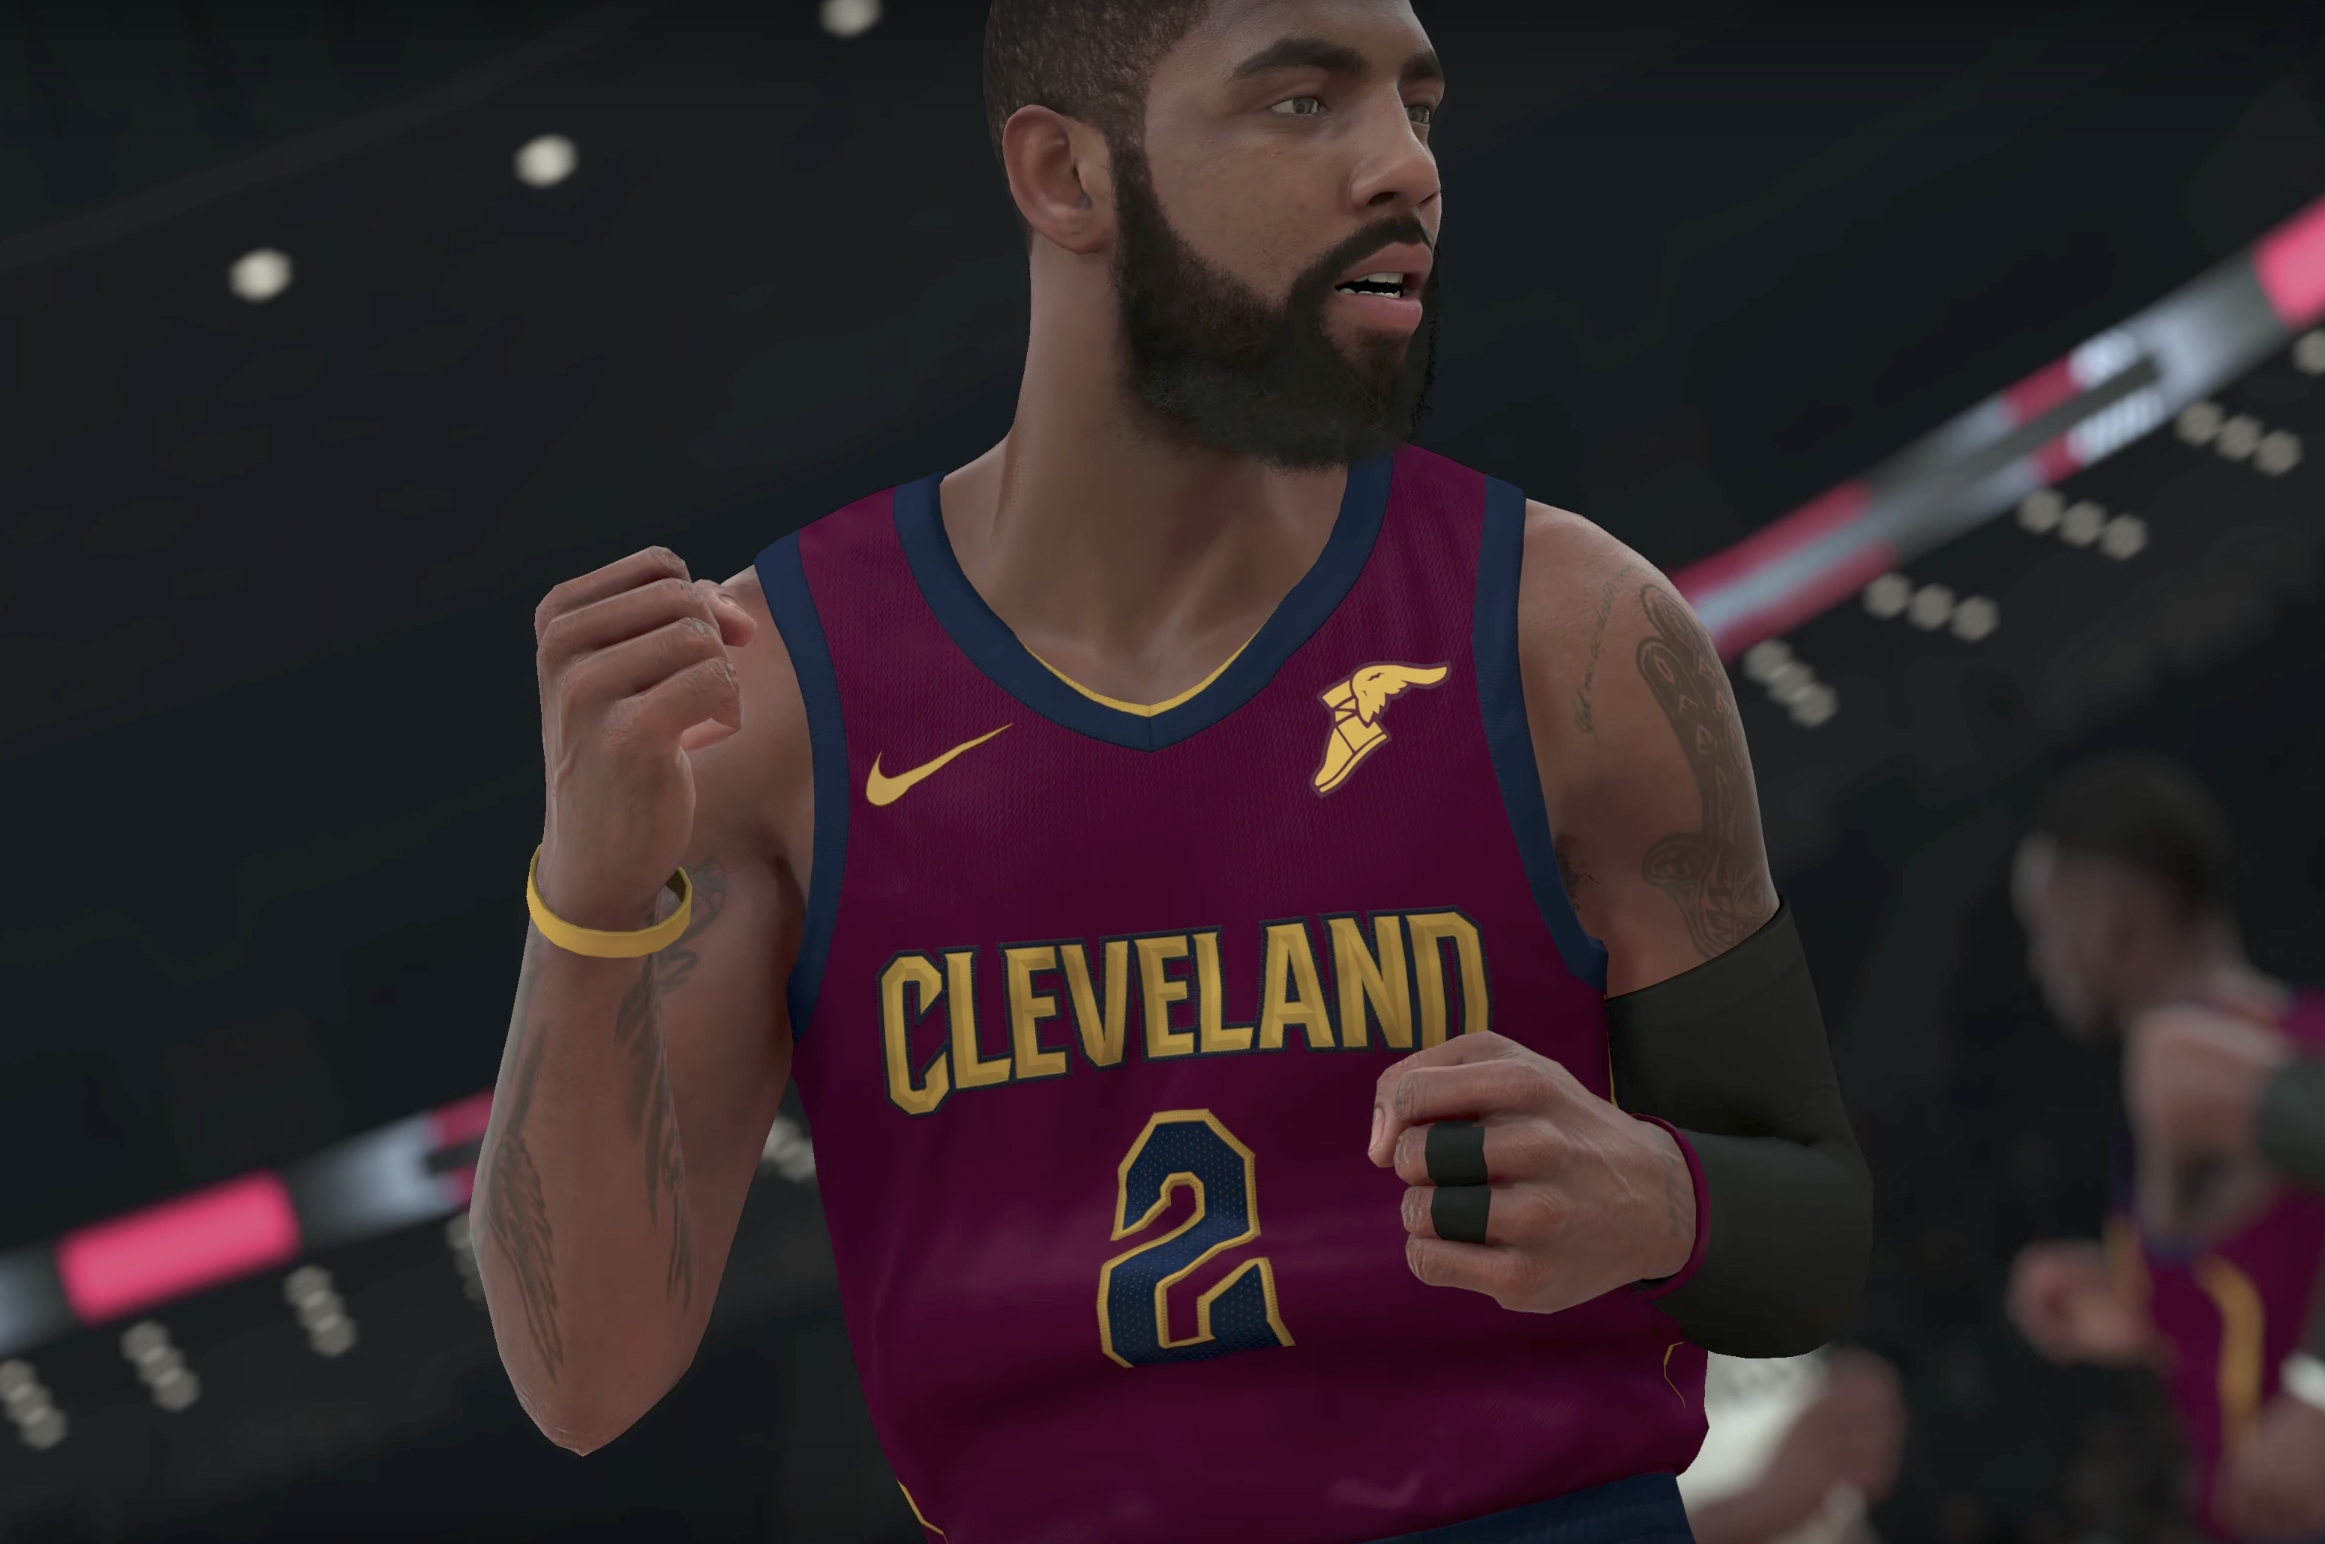 Meet the Brains Behind the NBA 2K18 Player Ratings